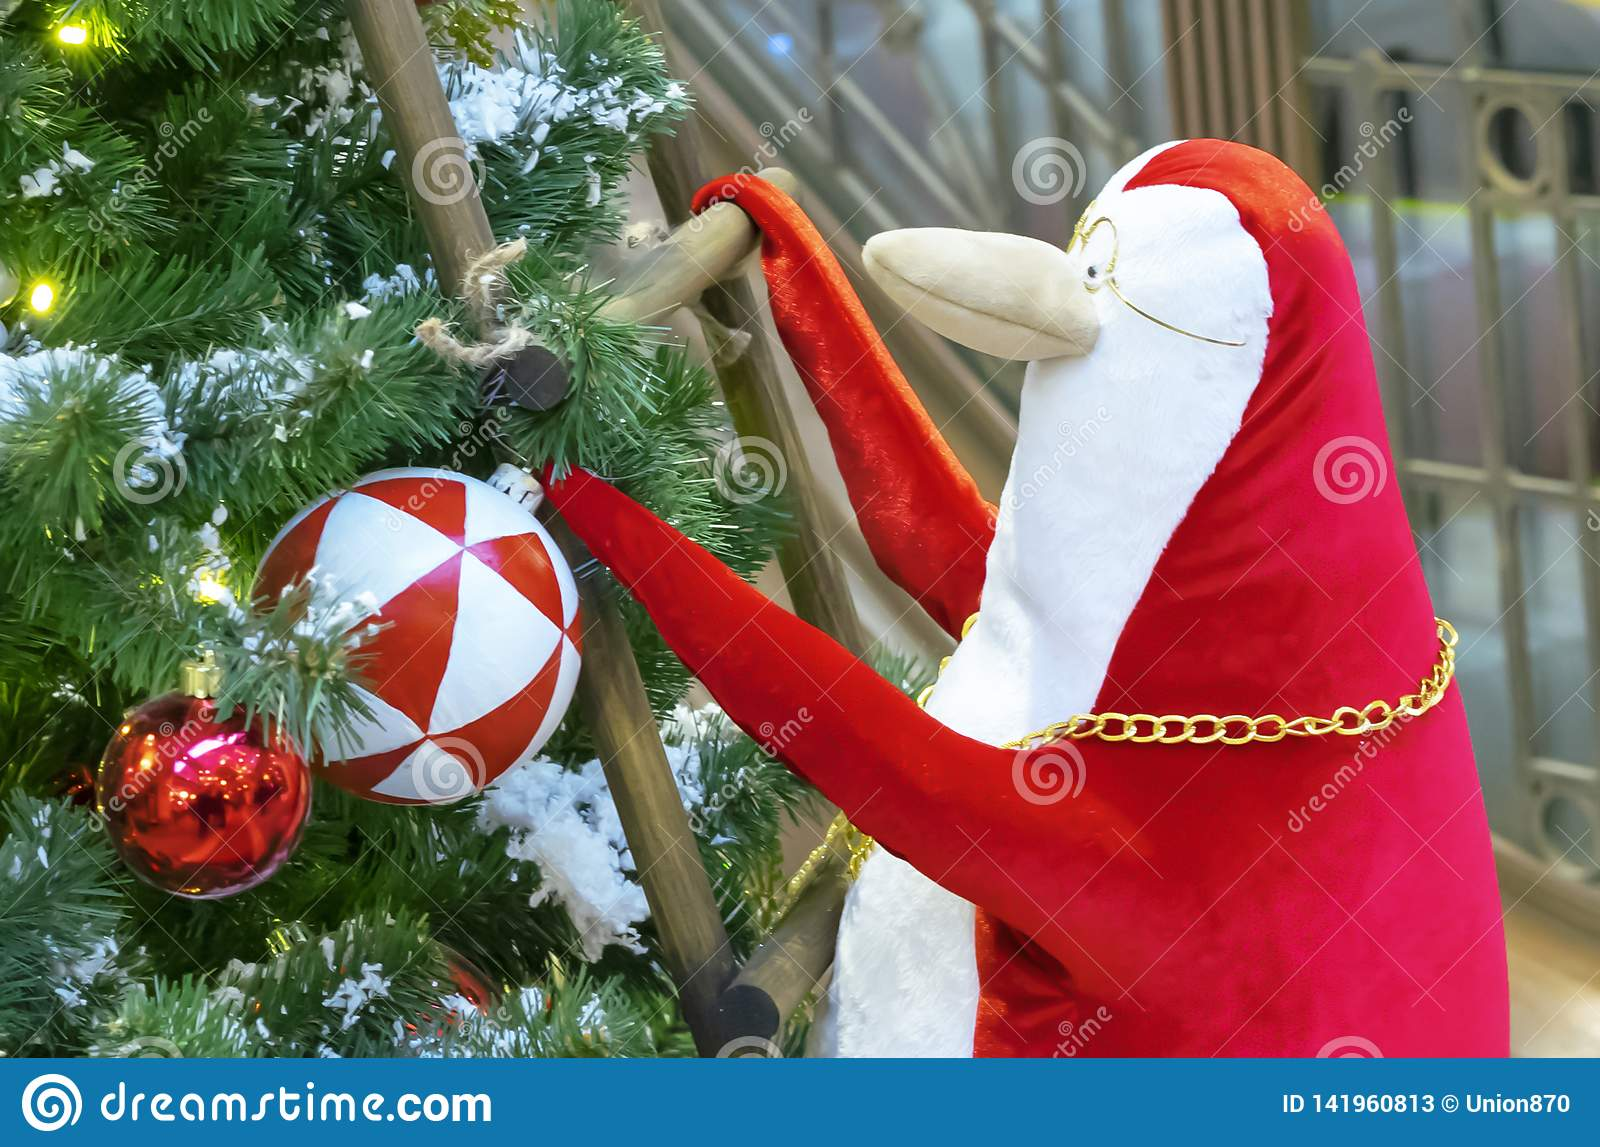 A red and white penguin climbs the stairs to the Christmas tree